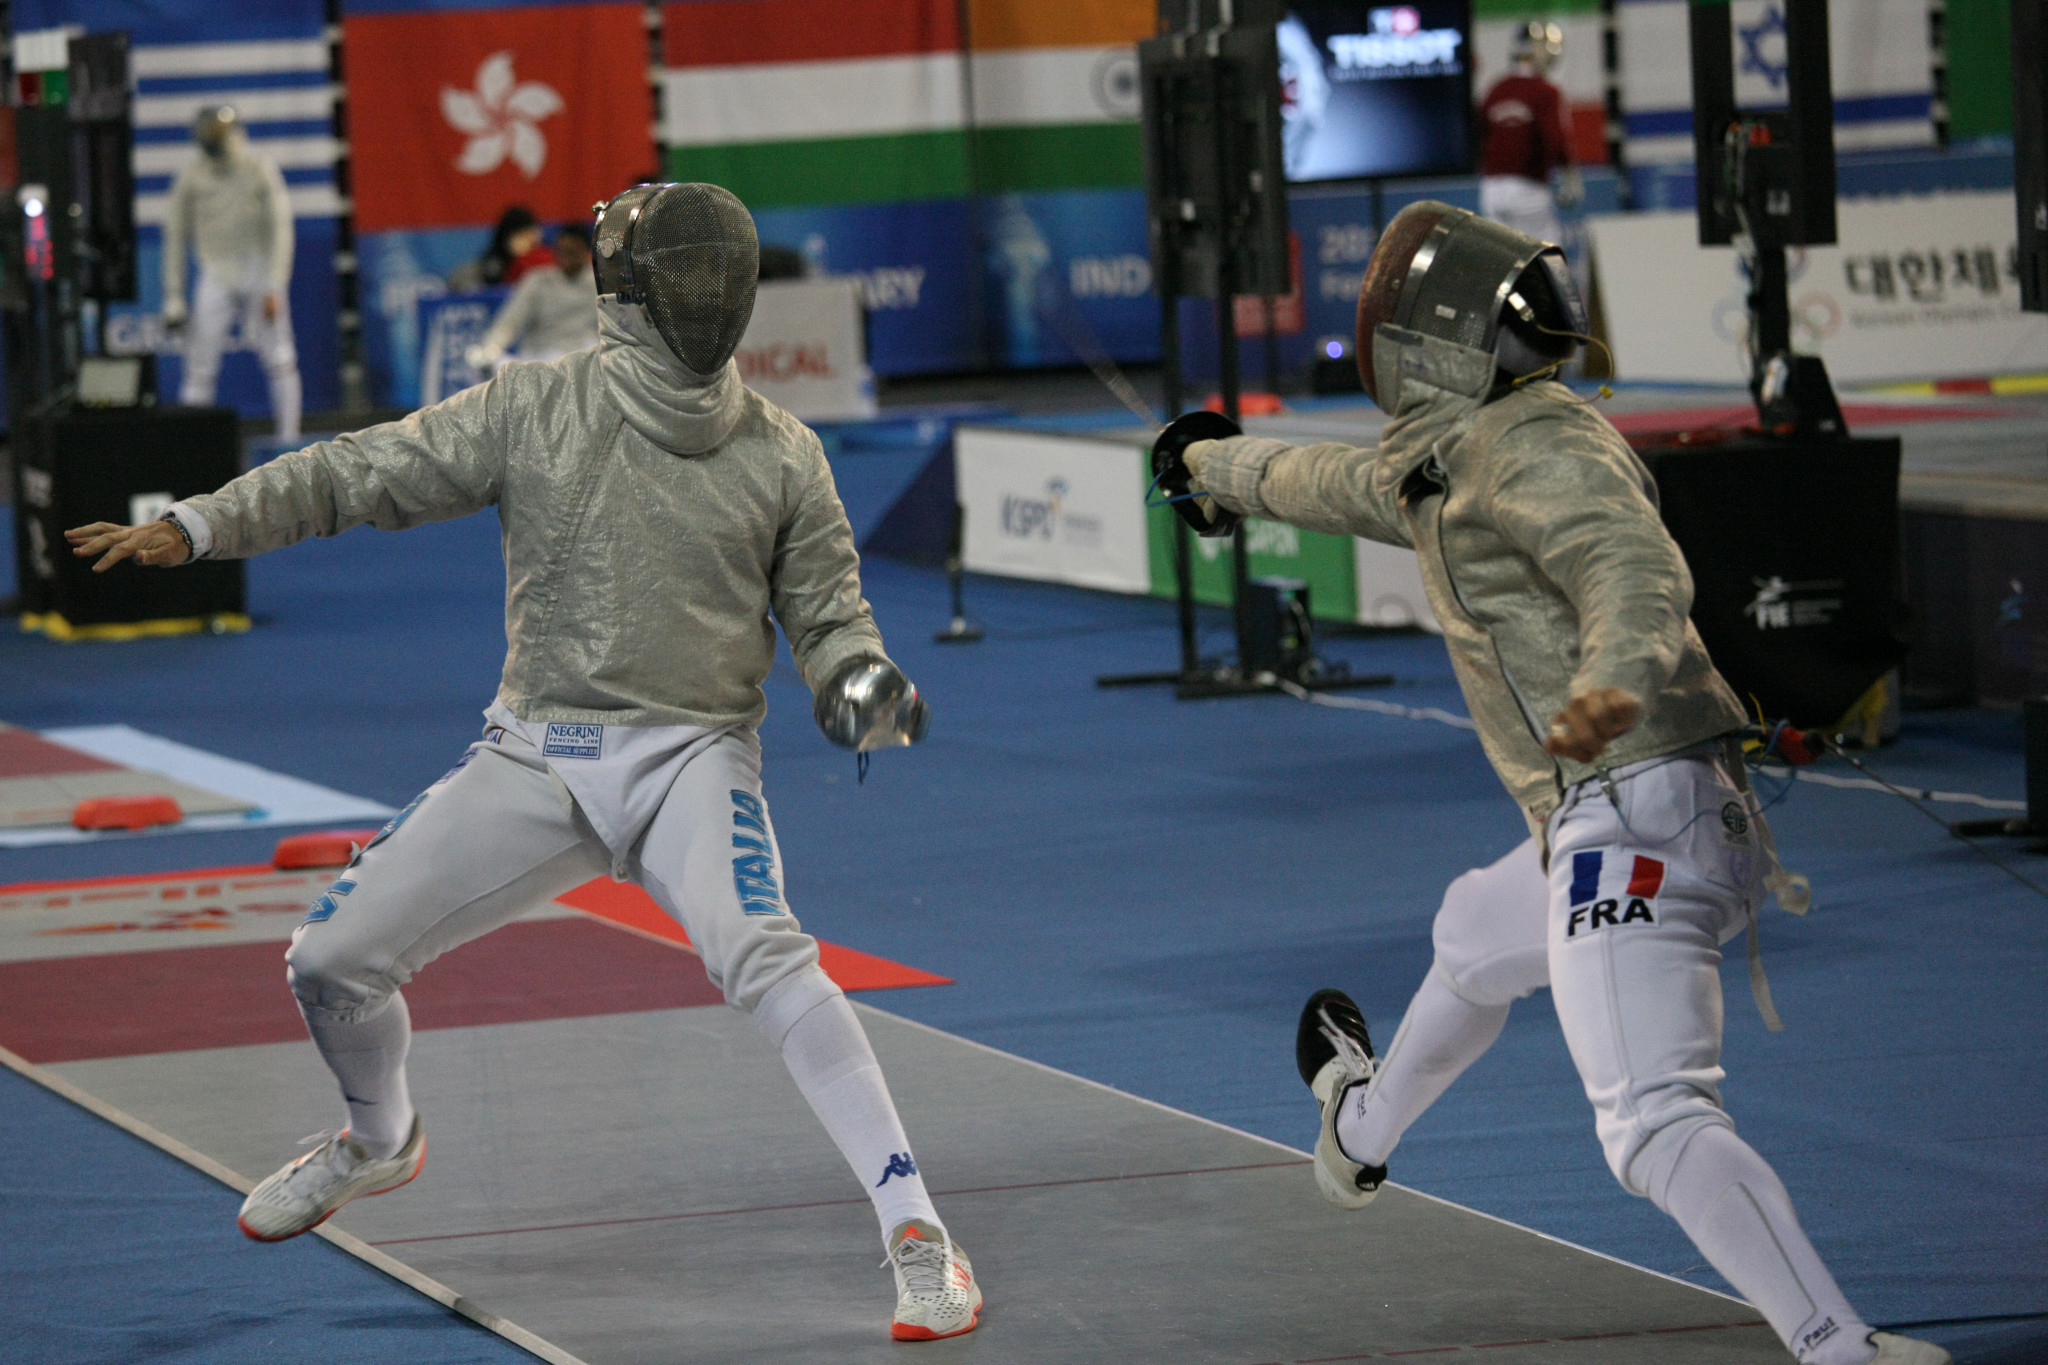 France's Lambert through to face top seed Dershwitz at FIE Men's Sabre World Cup in Madrid